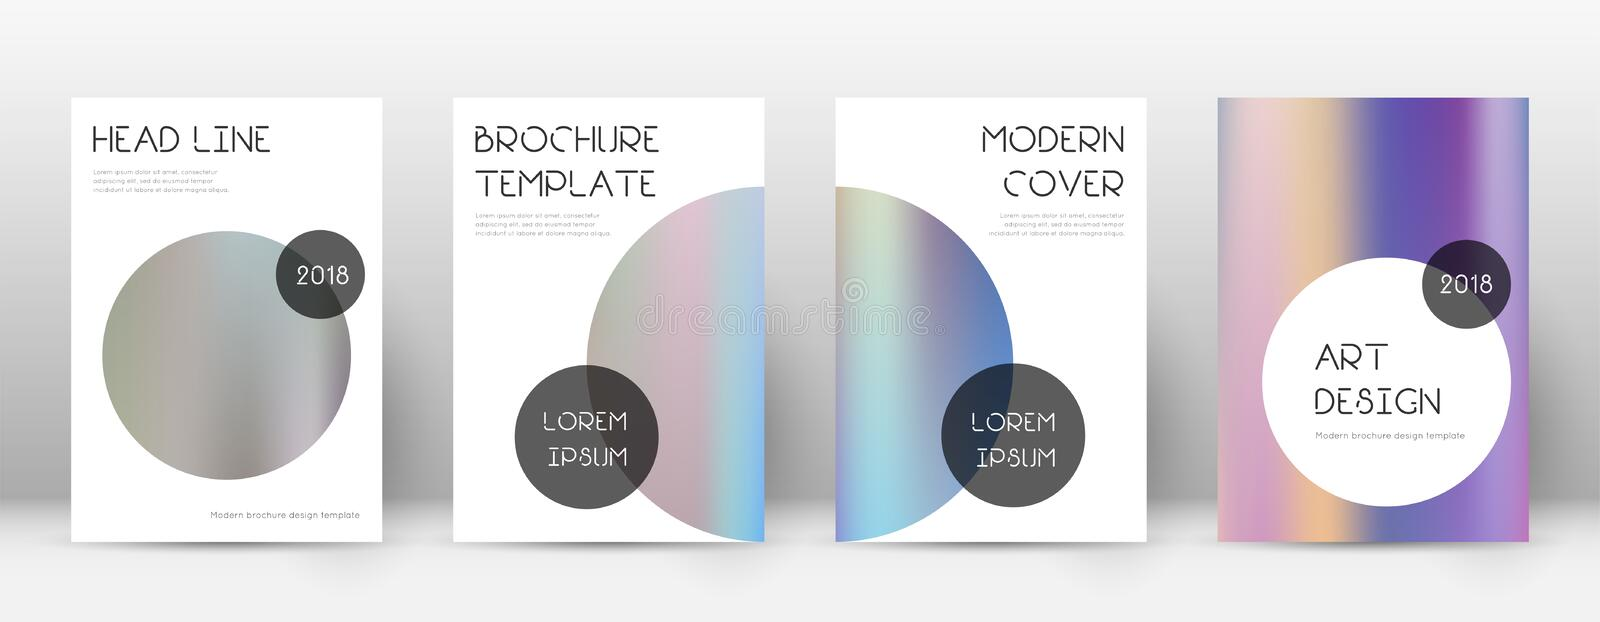 Flyer layout. Trendy glamorous template for Brochure, Annual Report, Magazine, Poster, Corporate Presentation, Portfolio, Flyer. Beauteous color gradients vector illustration